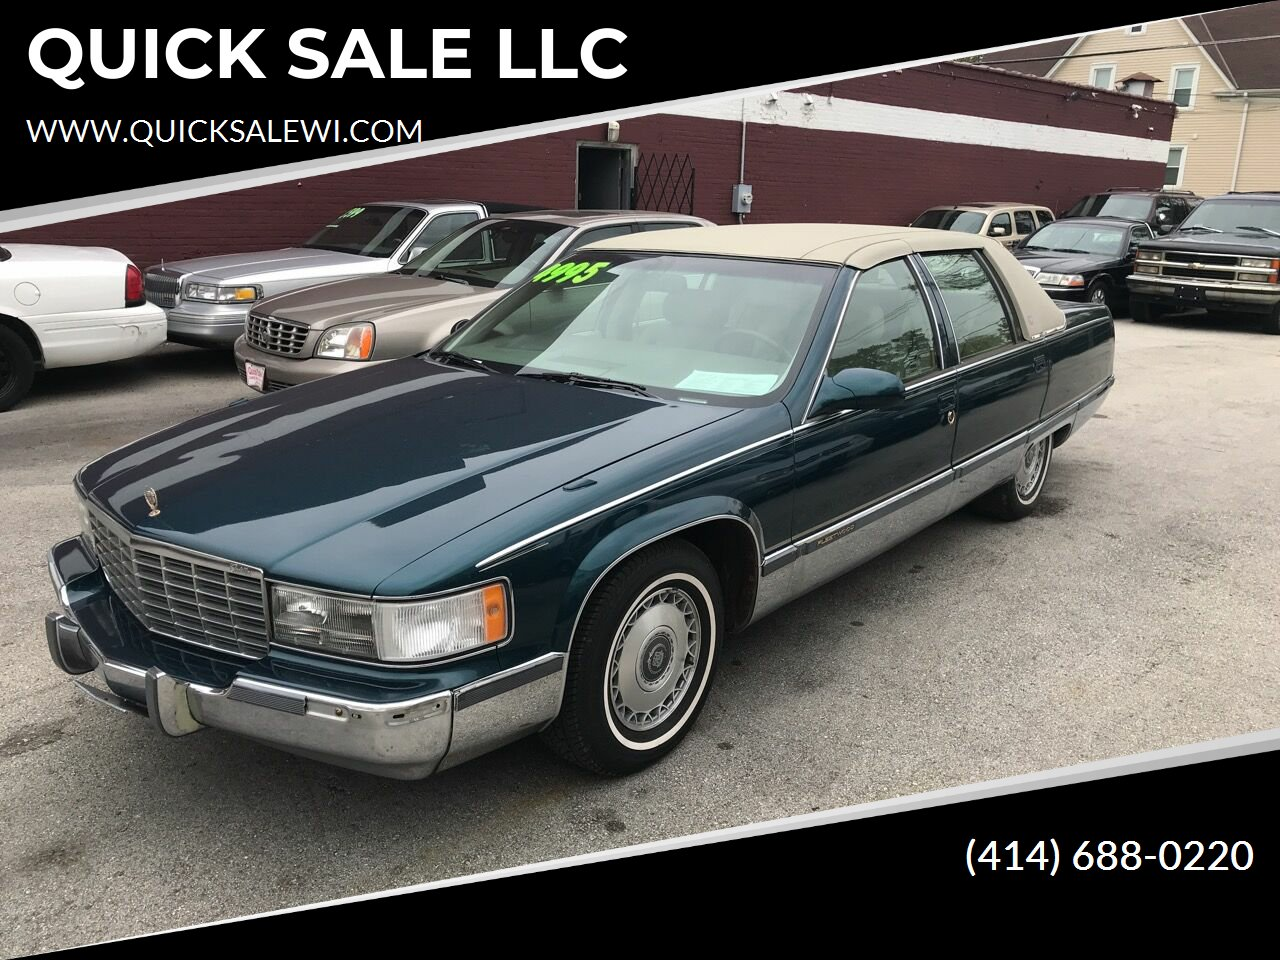 used 1995 cadillac fleetwood for sale carsforsale com used 1995 cadillac fleetwood for sale